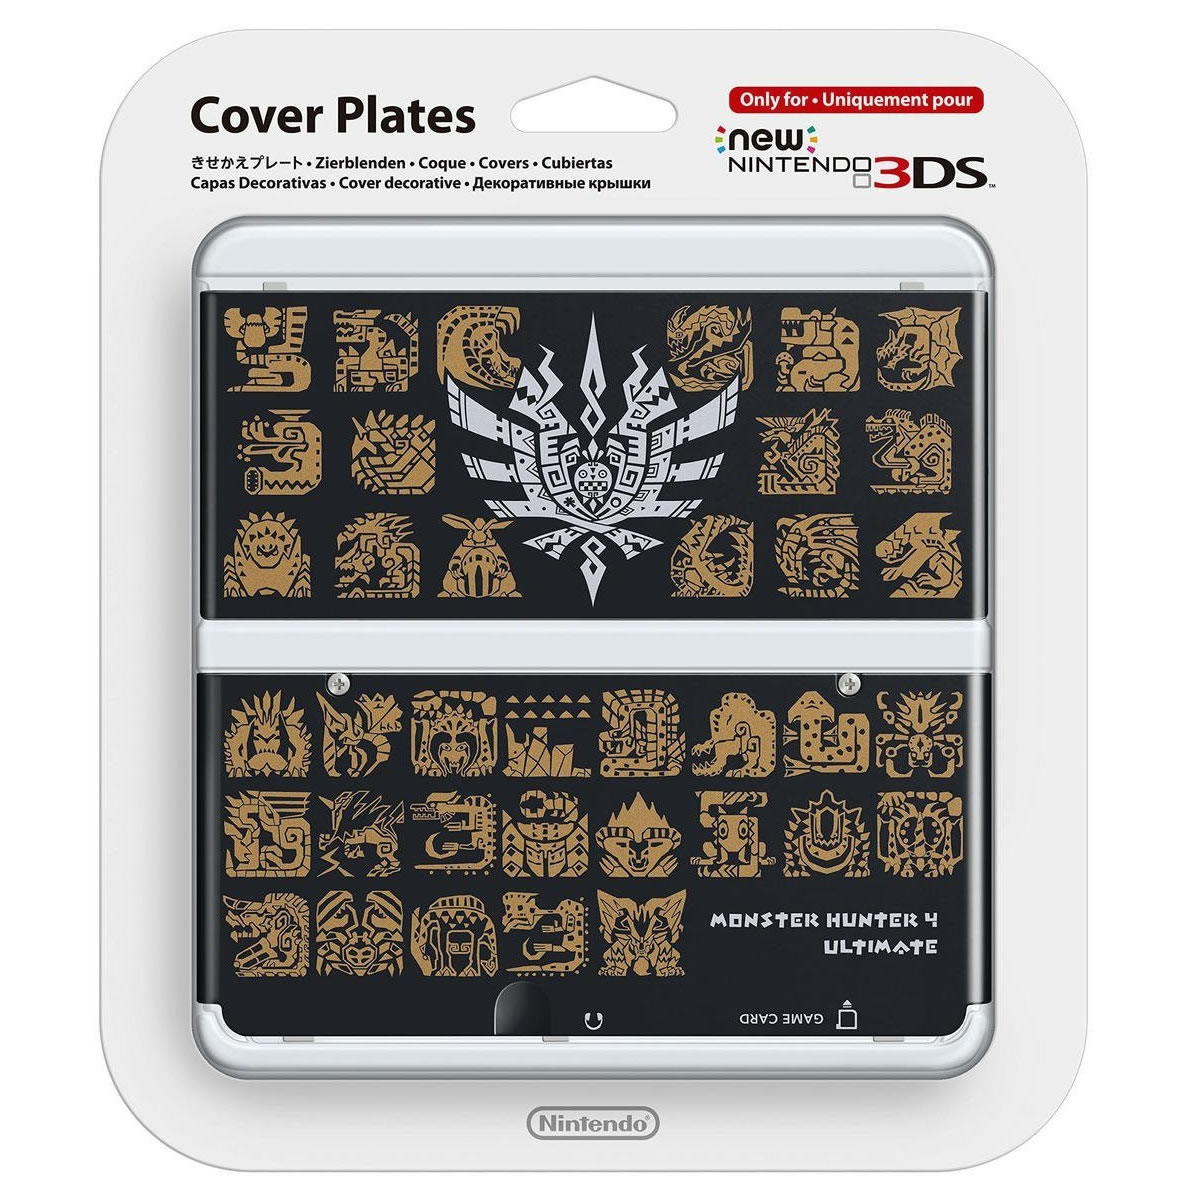 NEW NINTENDO 3DS COVERPLATE Monster Hunter 4 Ultimate Black (New 3DS)